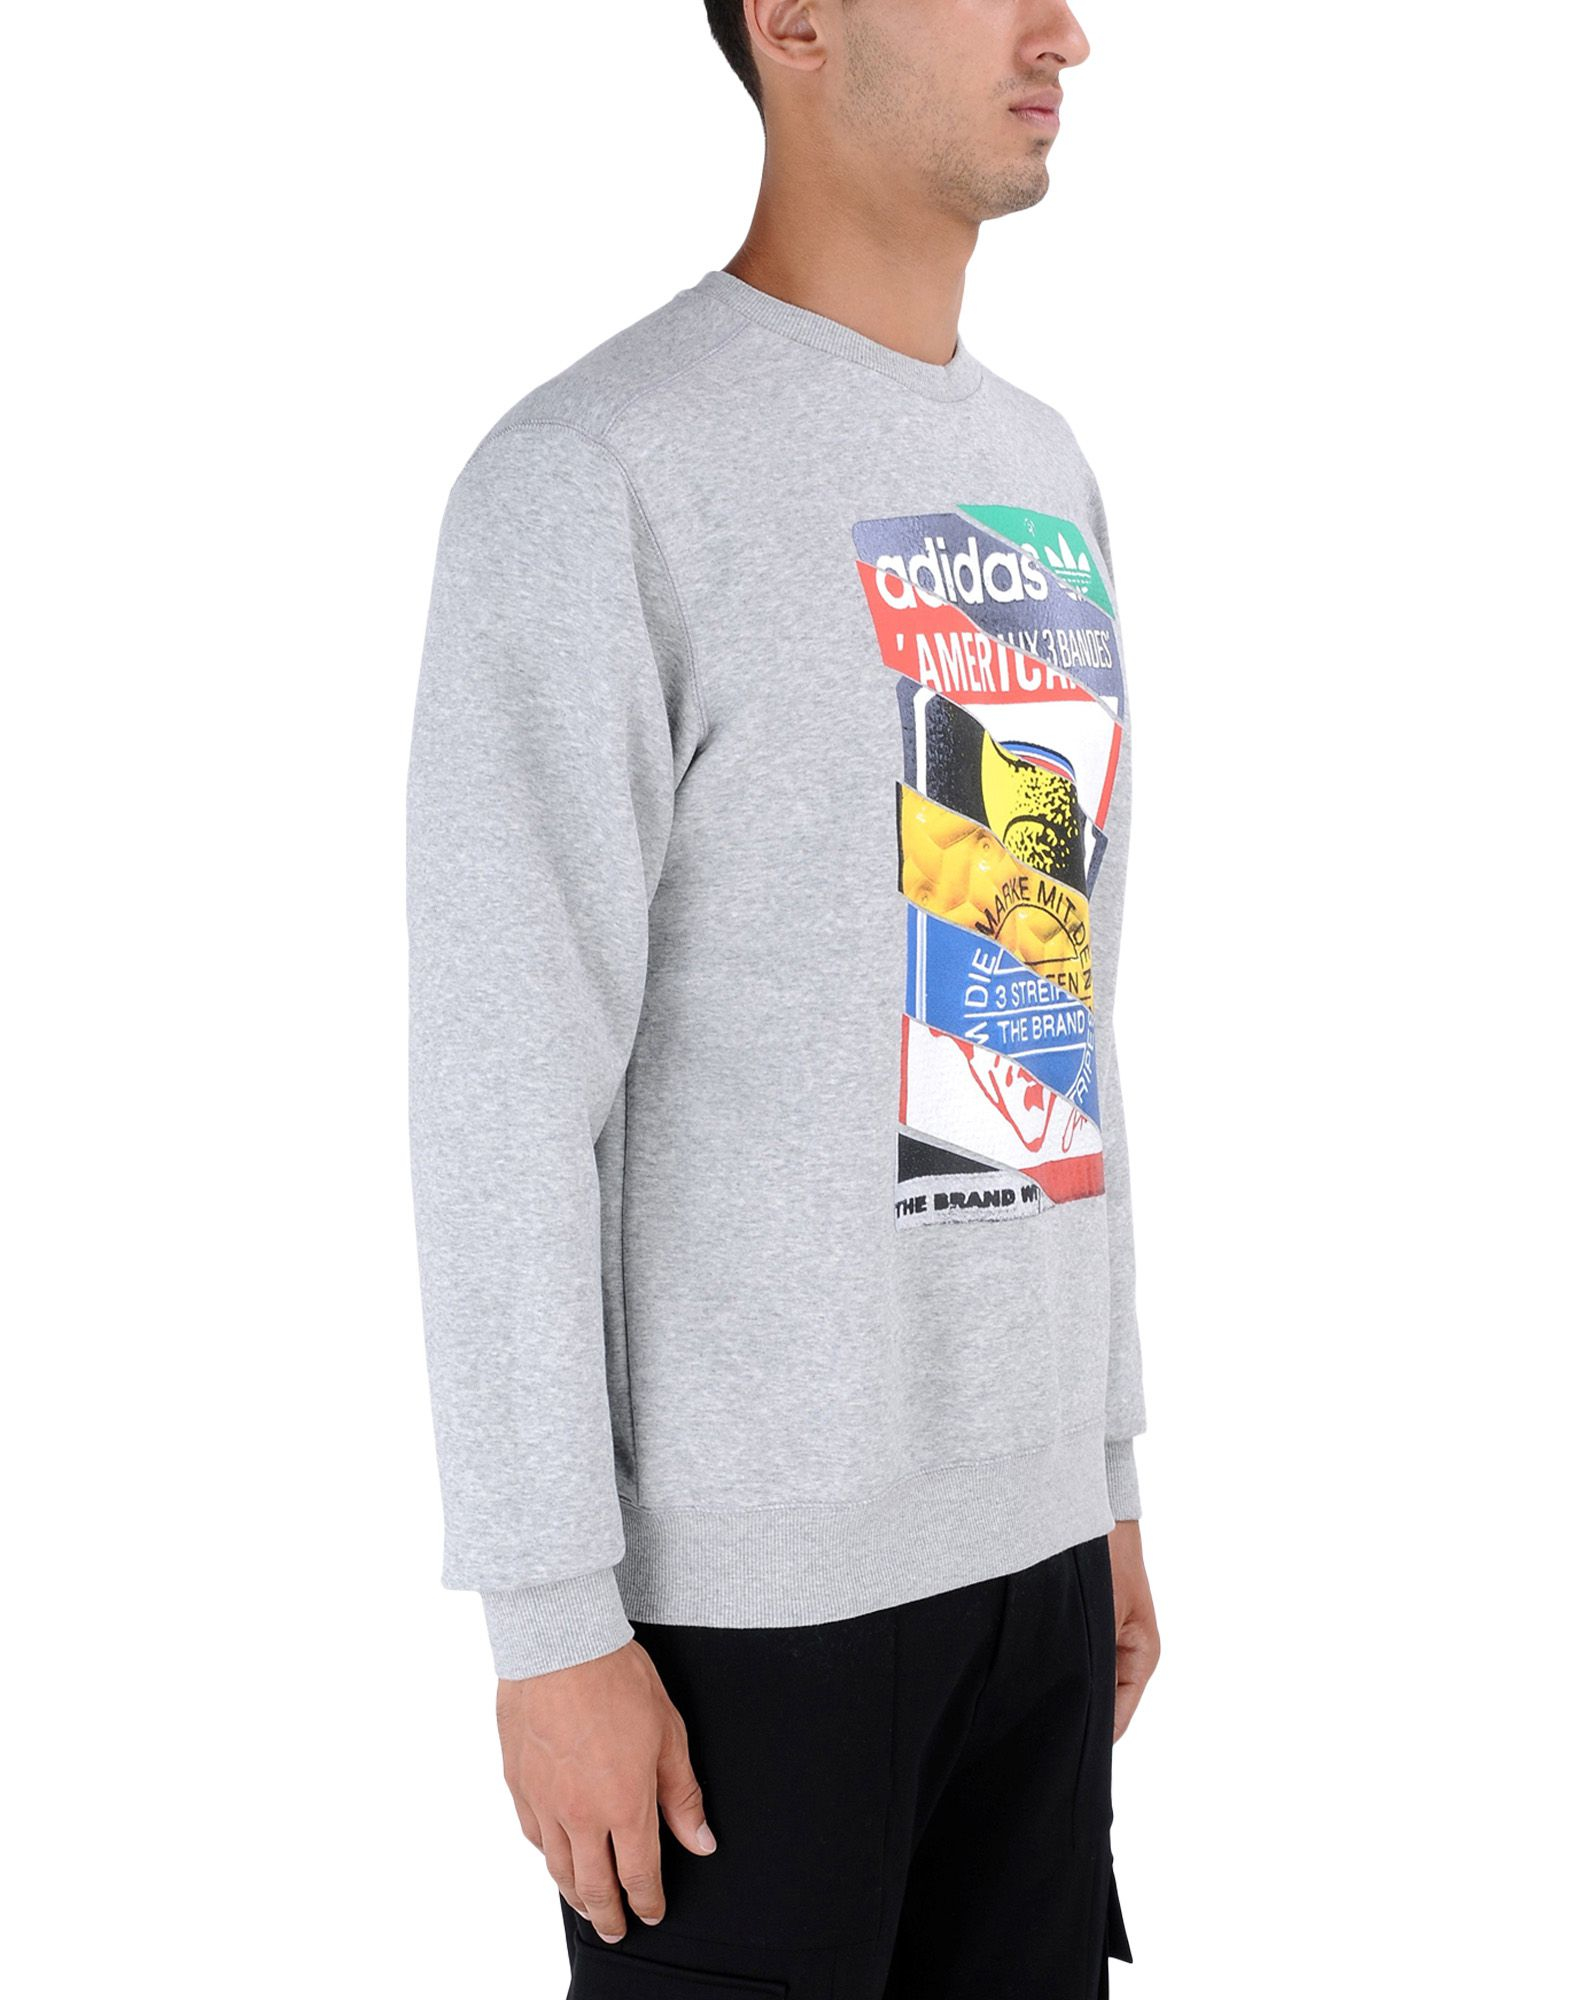 adidas originals sweatshirt in gray for men light grey. Black Bedroom Furniture Sets. Home Design Ideas